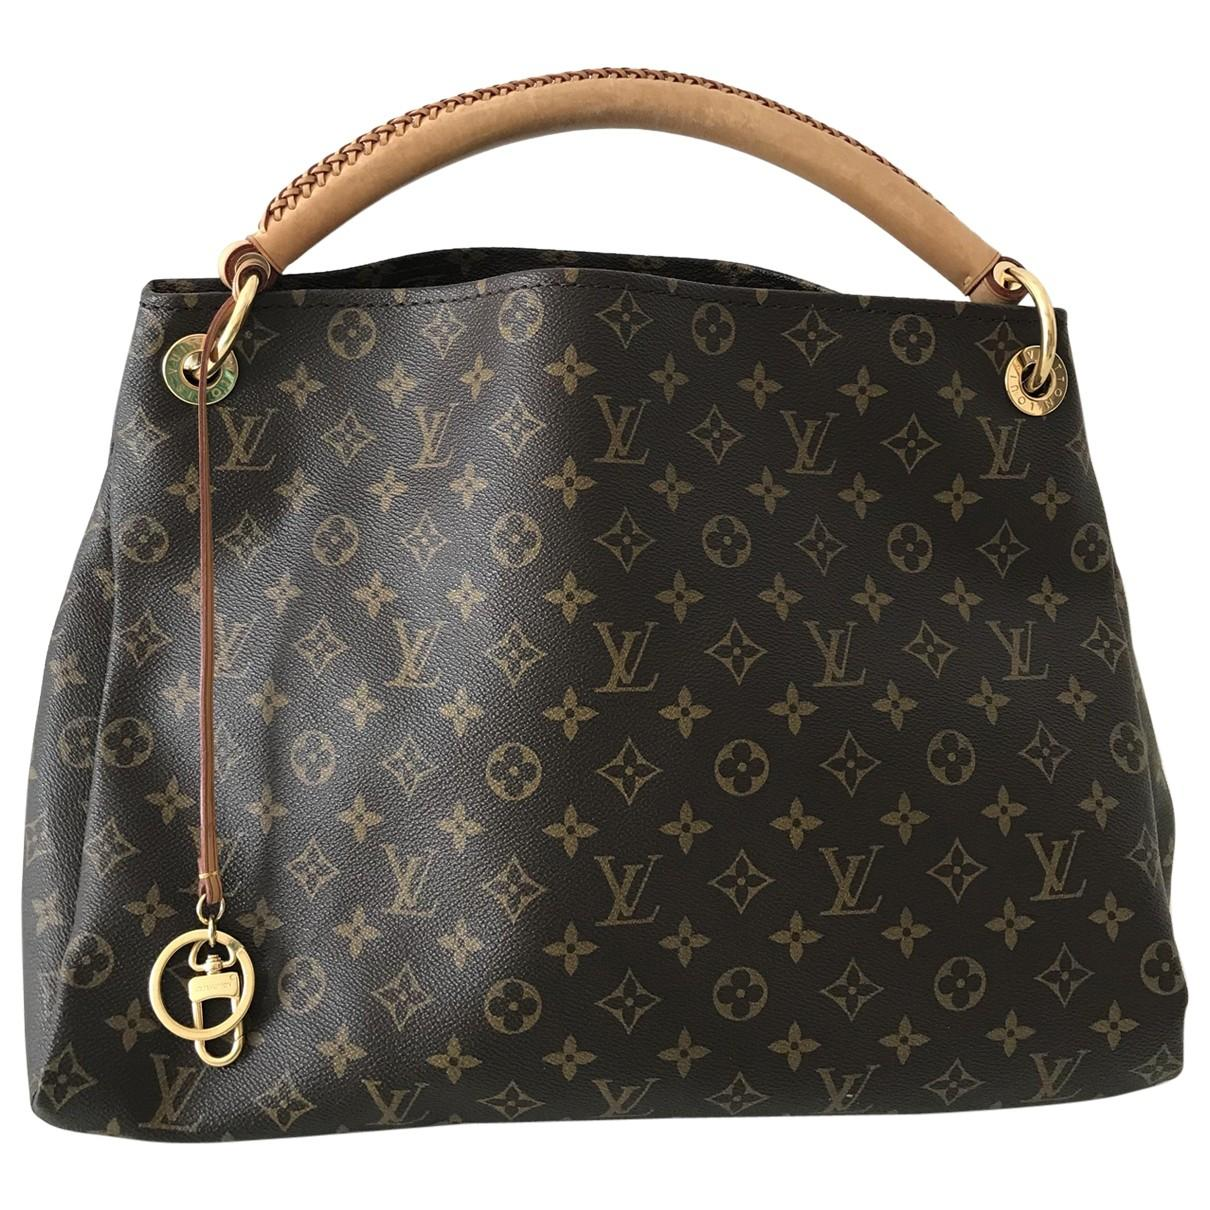 61e8df9971e8 Lyst - Louis Vuitton Pre-owned Artsy Other Cloth Handbags in Black